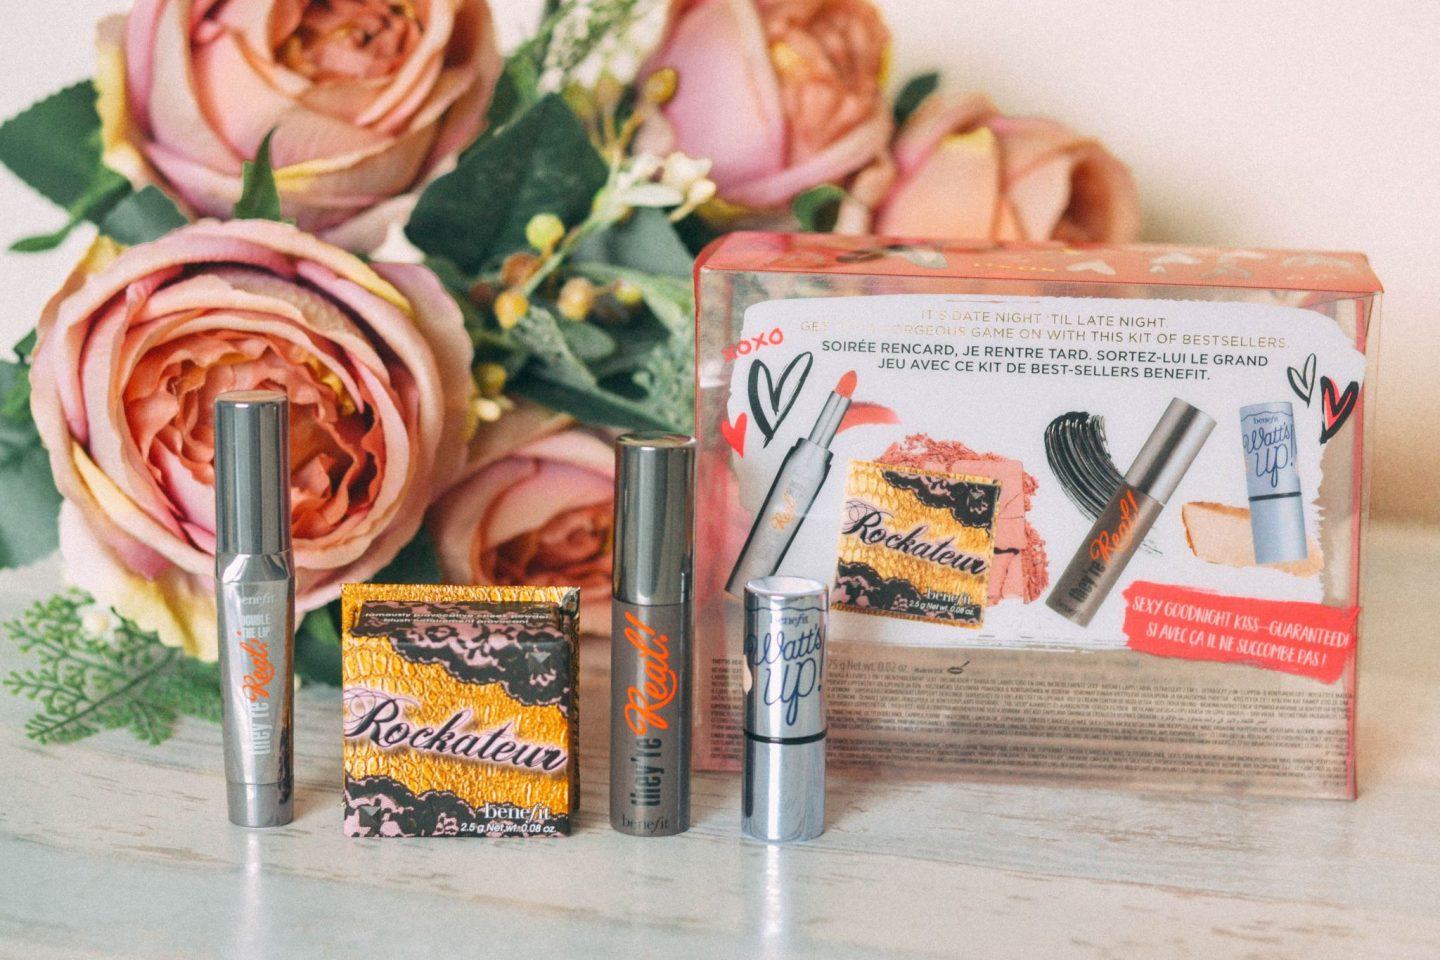 Date Night makeup with Benefit